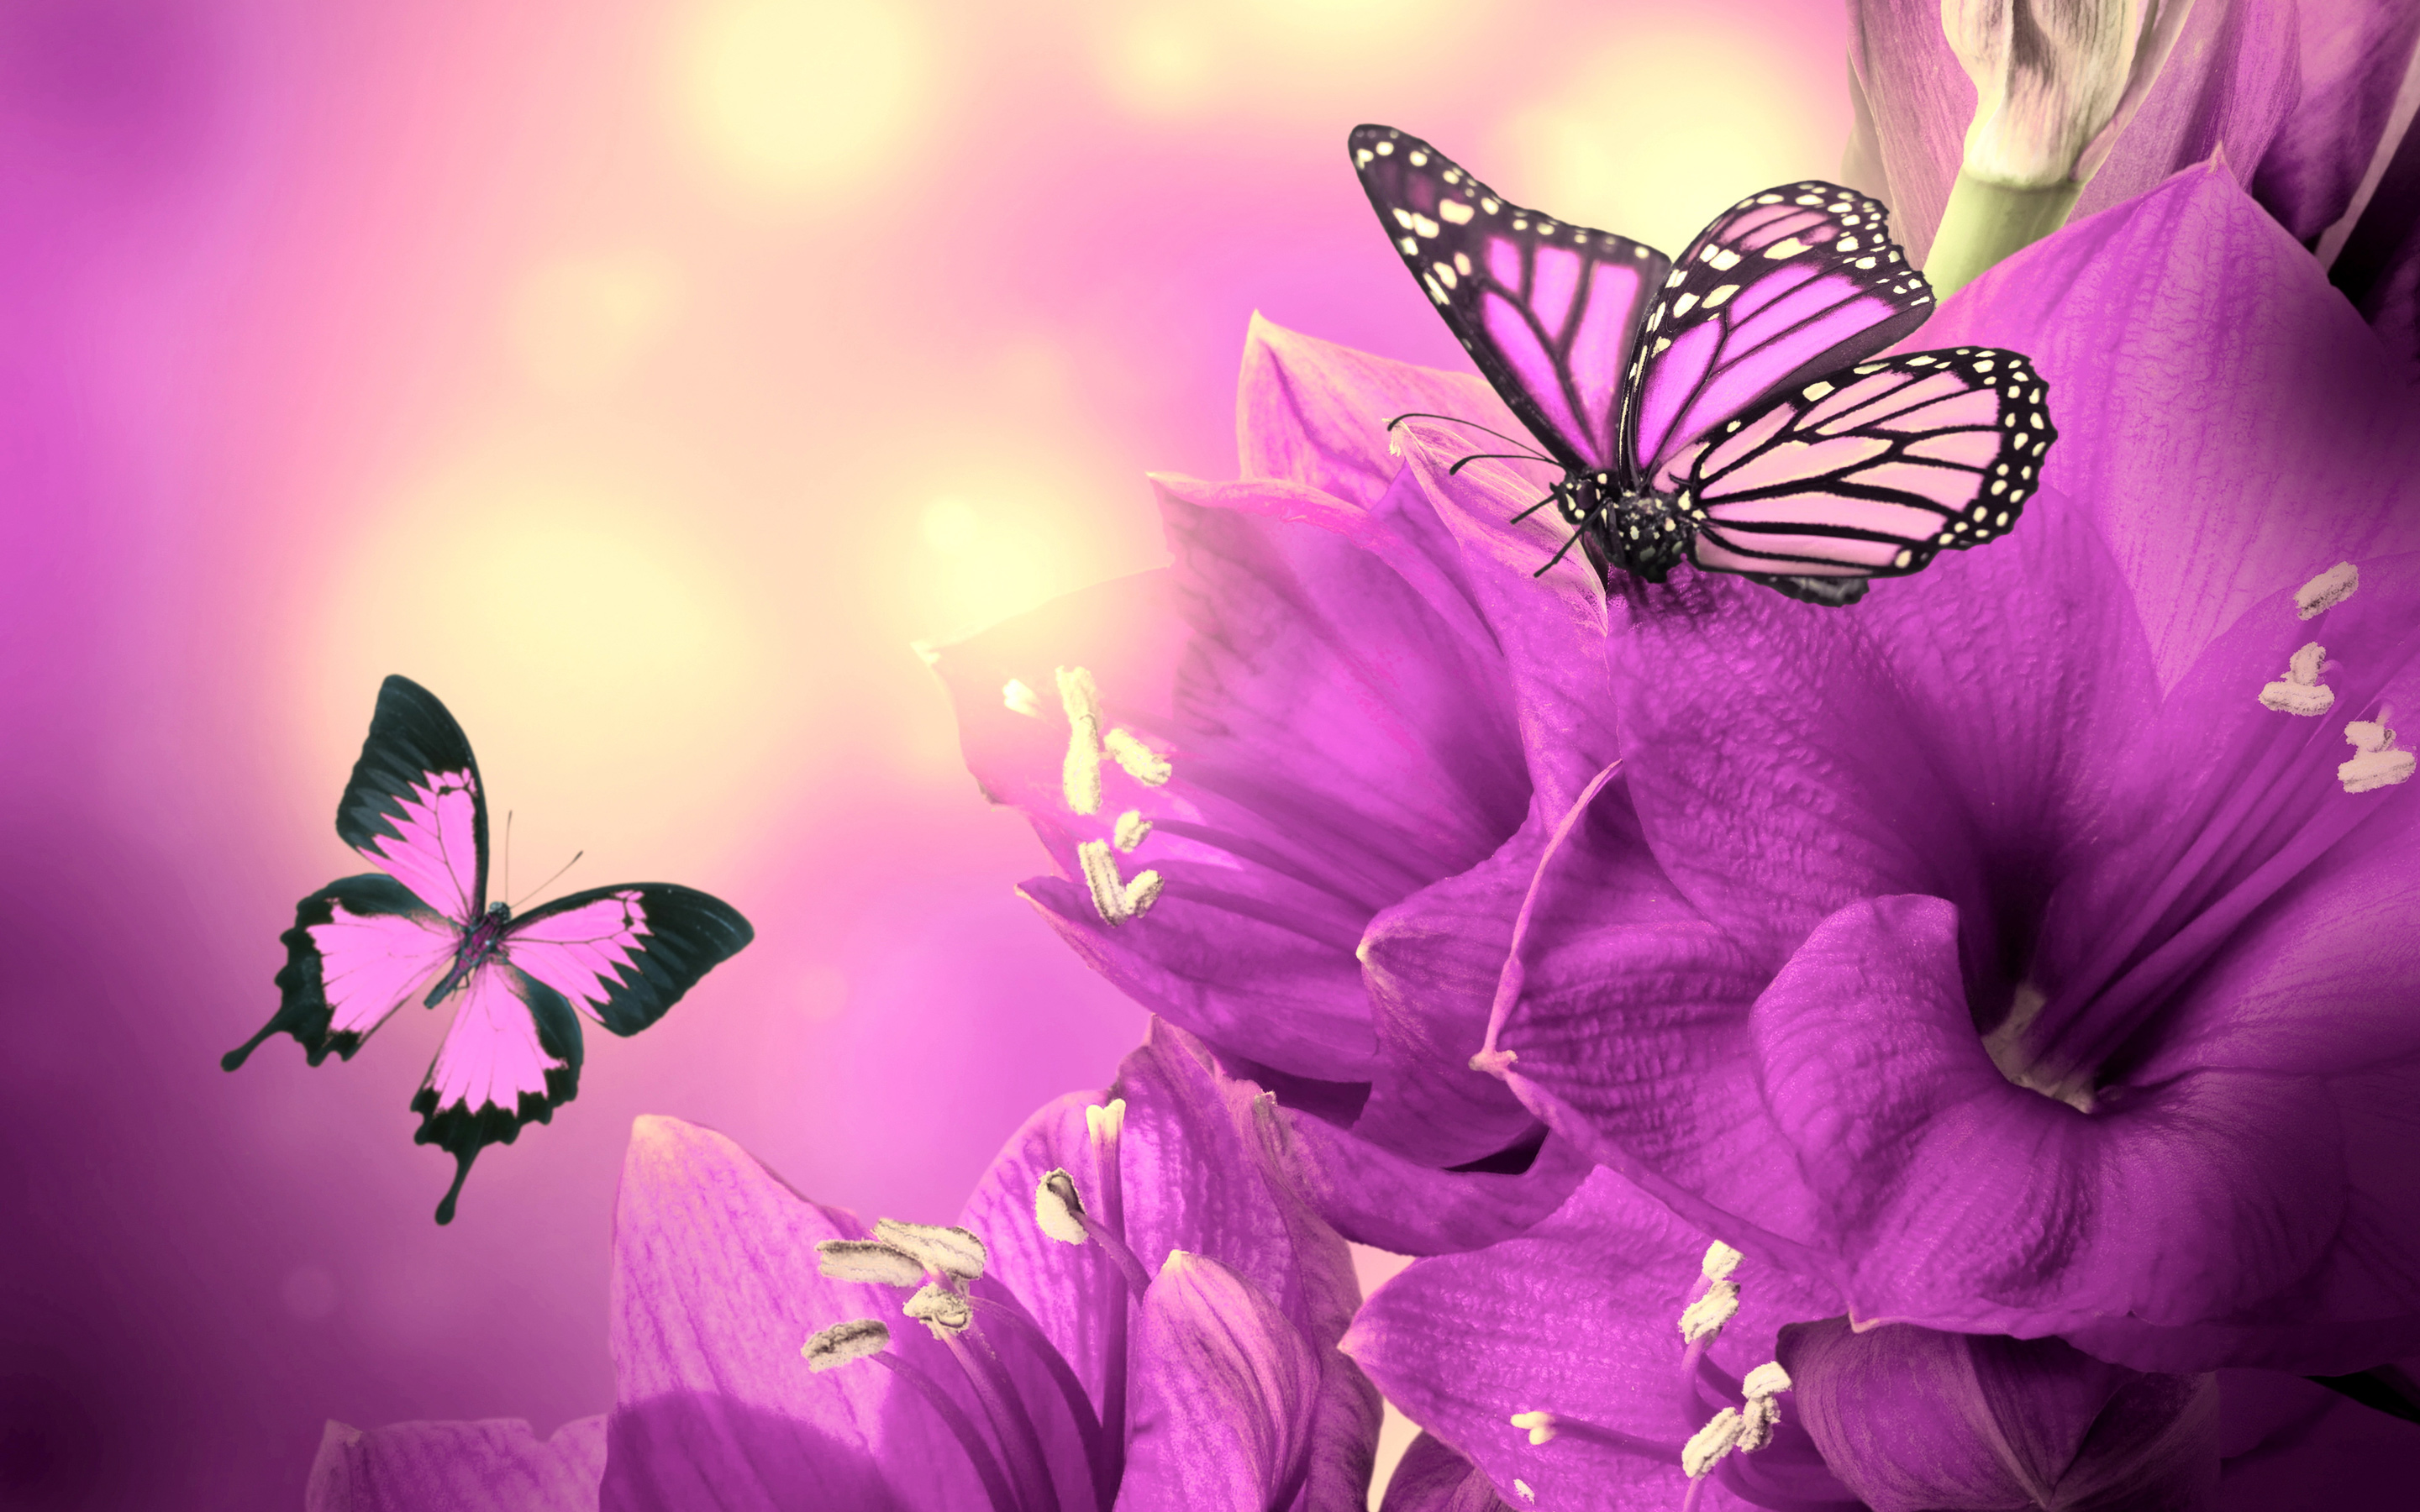 Free Download Butterfly And Flower Wallpaper 2880x1800 For Your